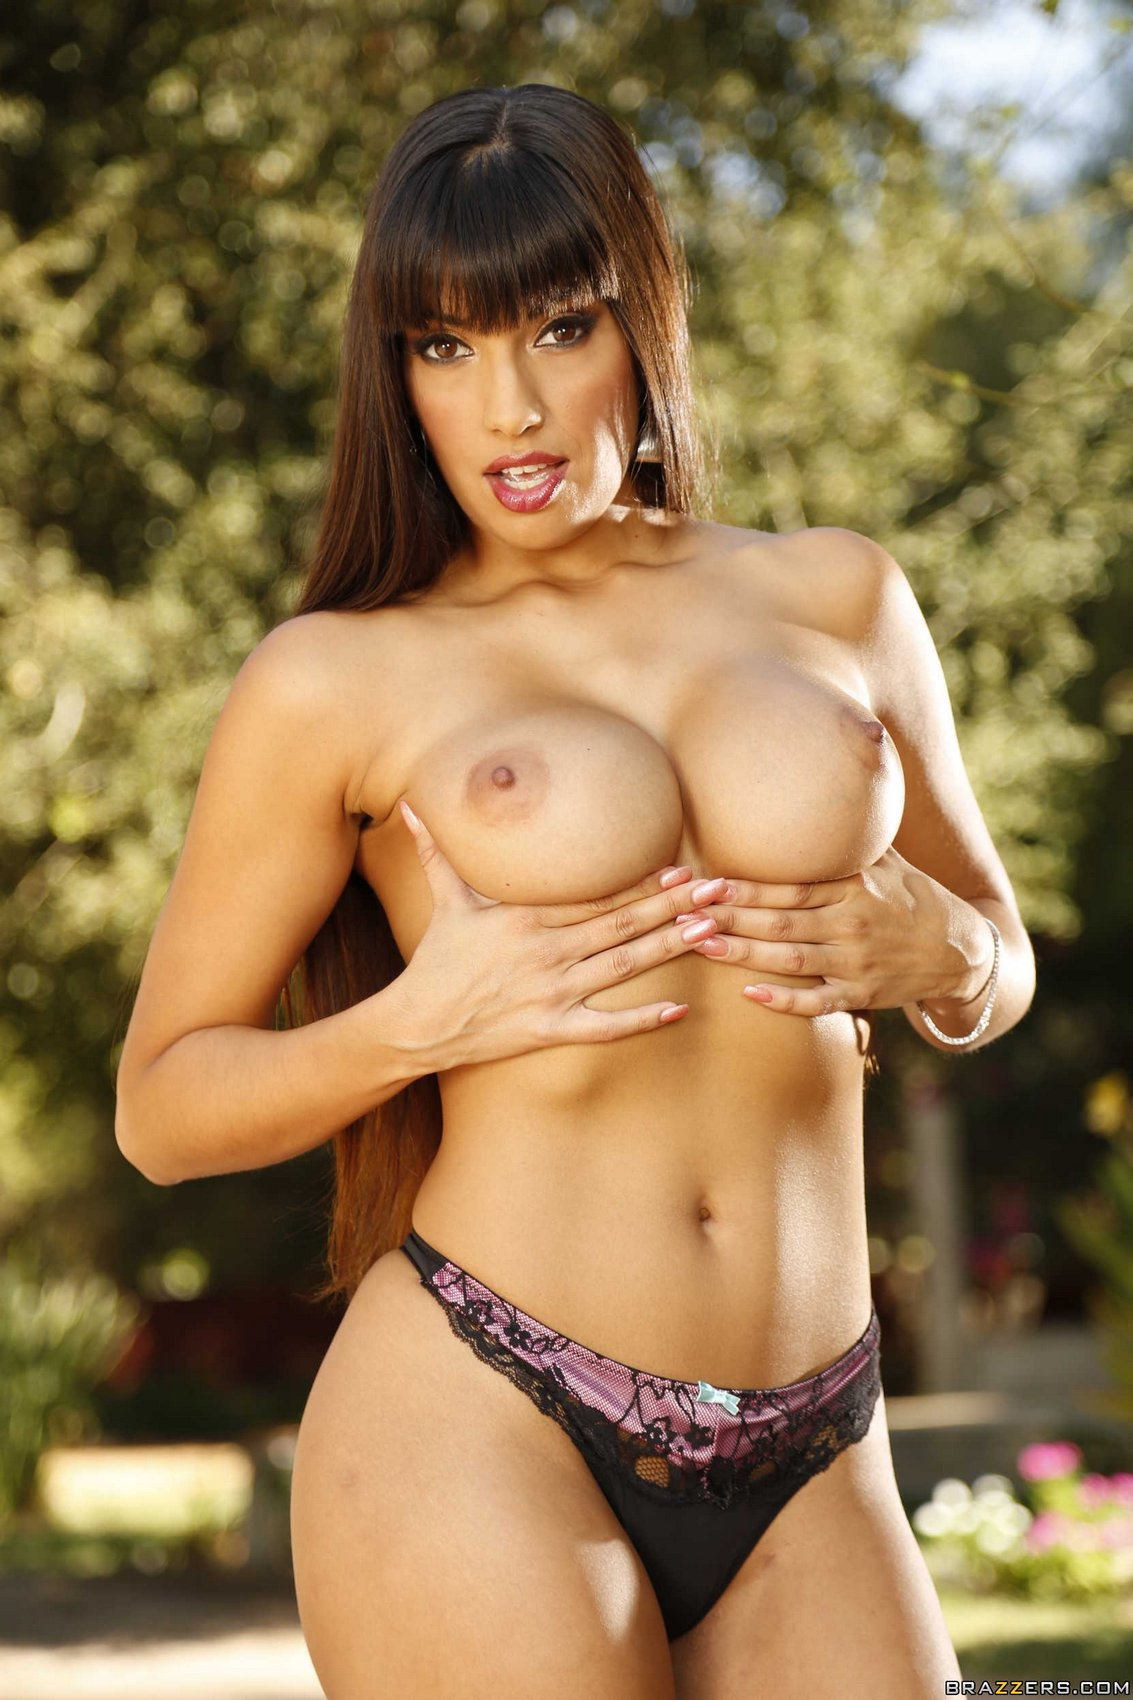 mercedes carrera in sexy dress stripping and showing her